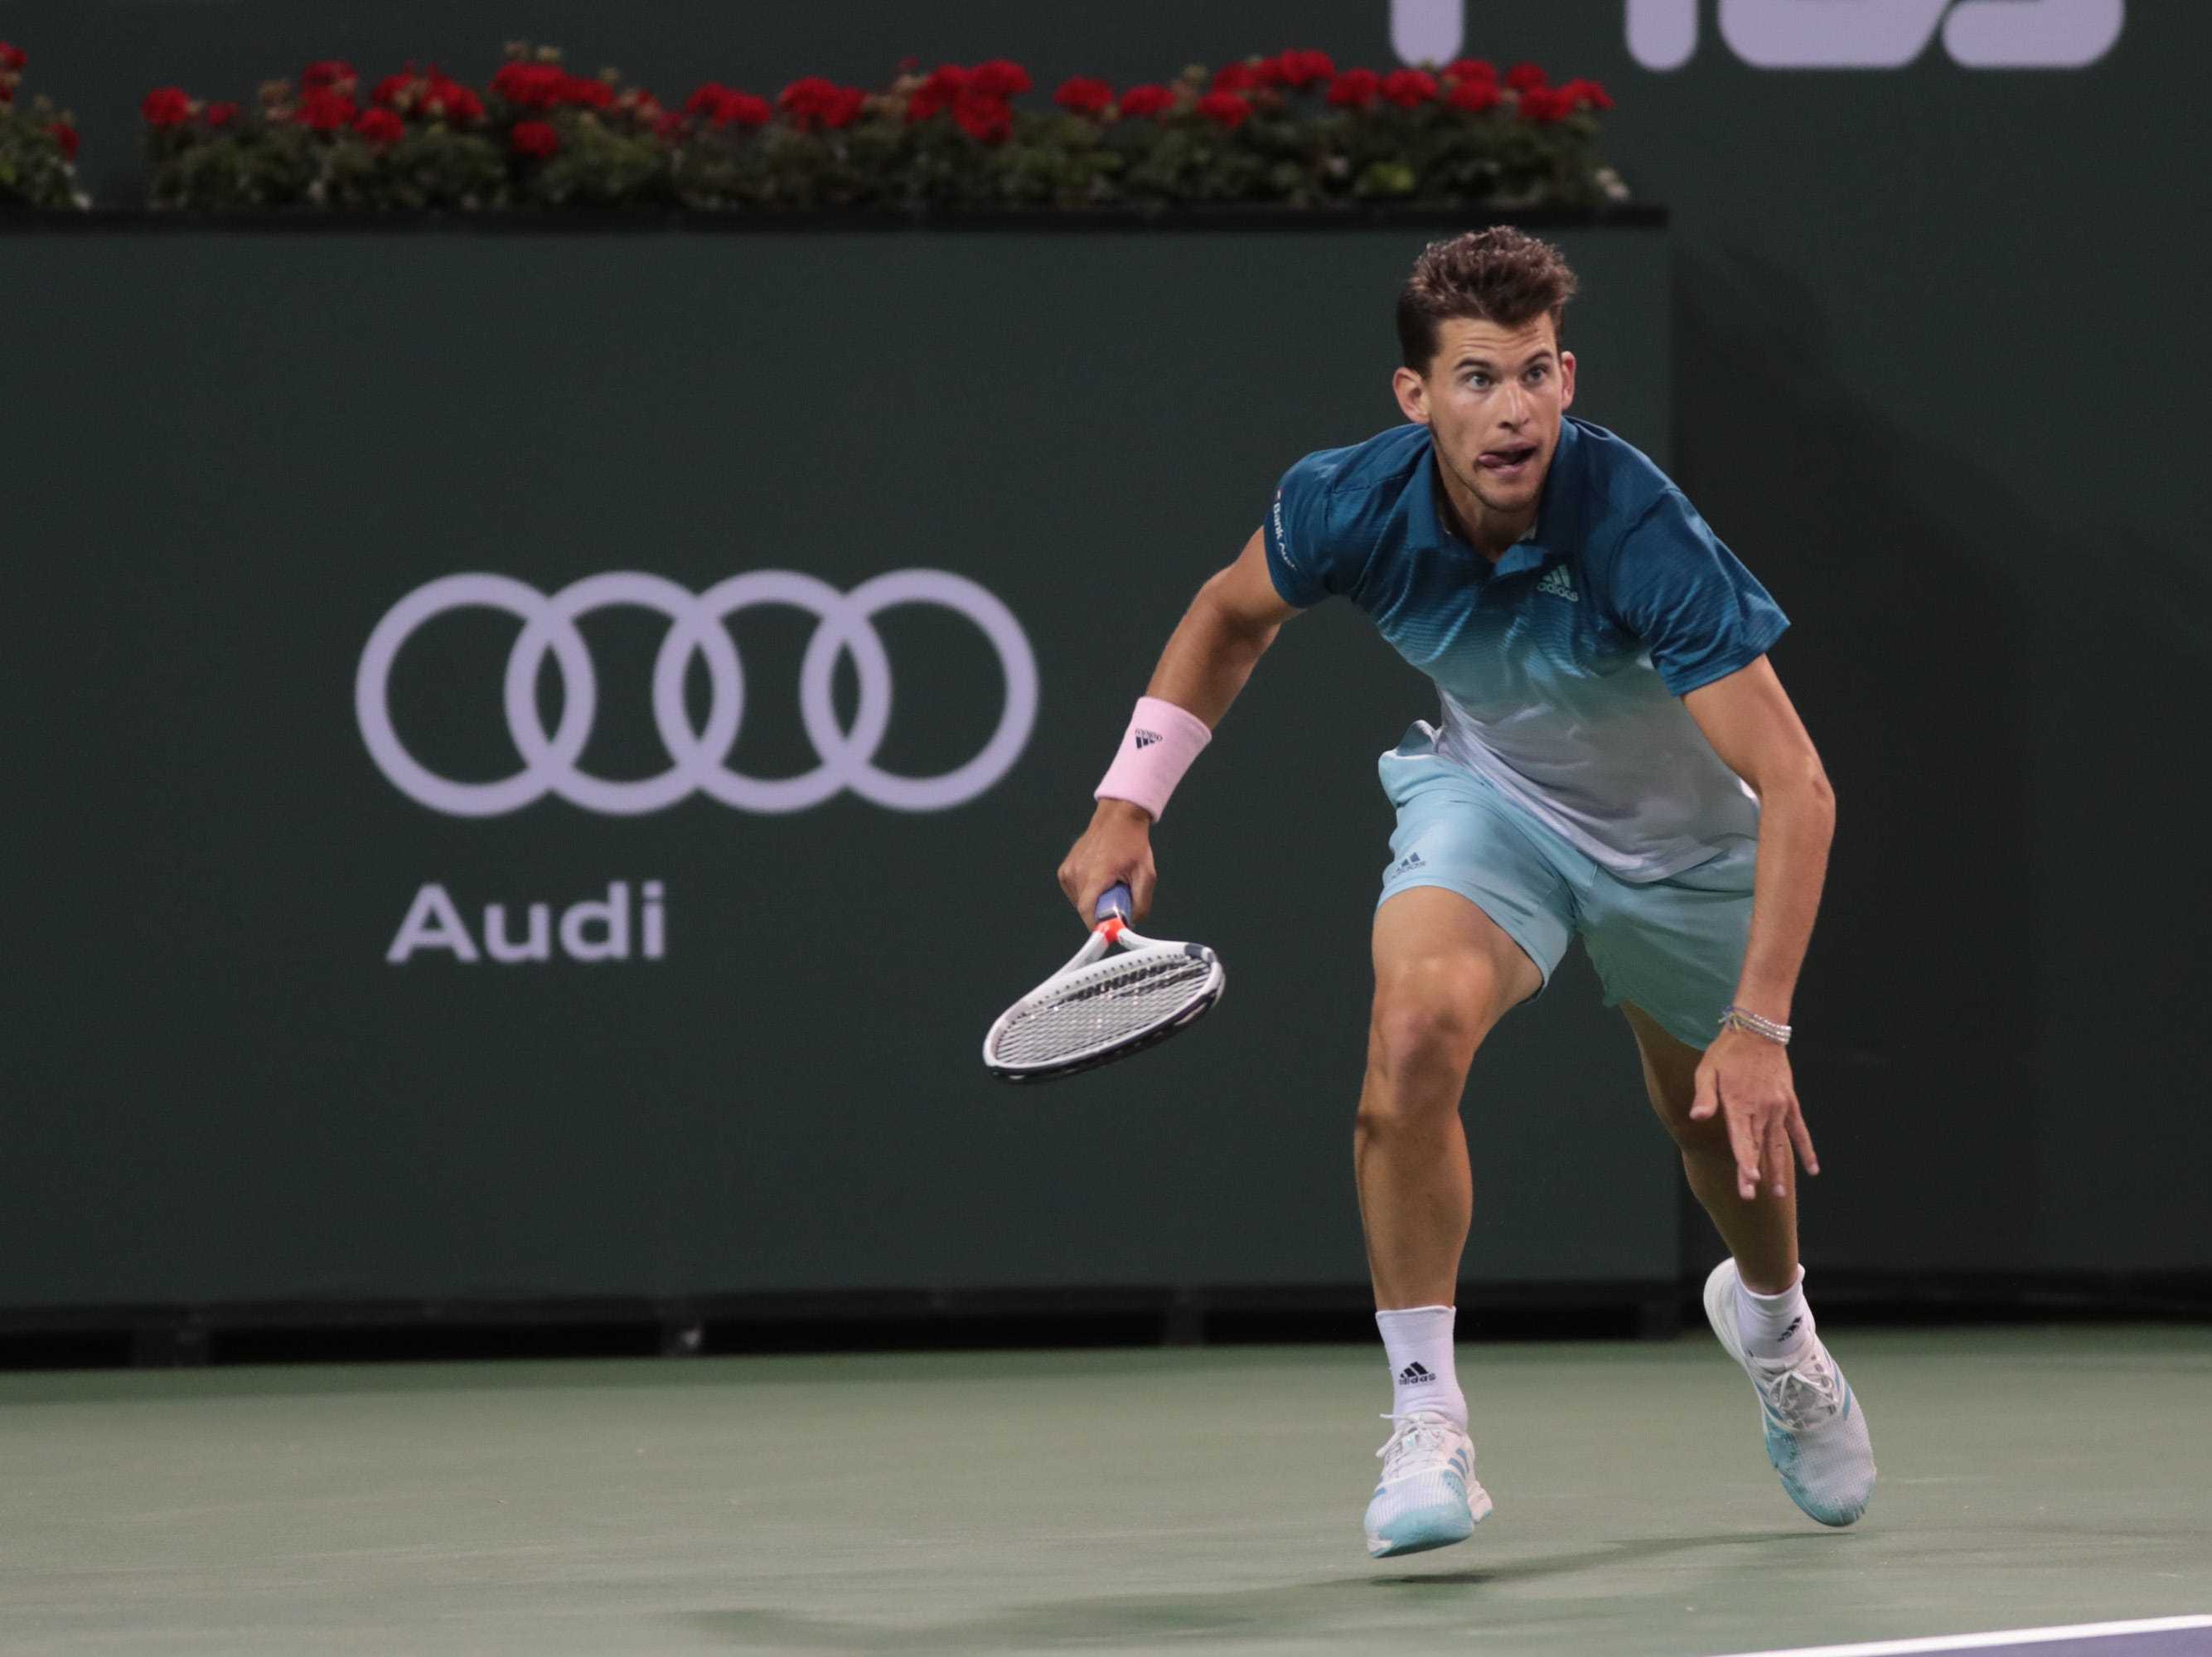 Dominic Thiem runs to a shot from Ivo Karlovic at the BNP Paribas Open in Indian Wells, Calif., March 13, 2019.